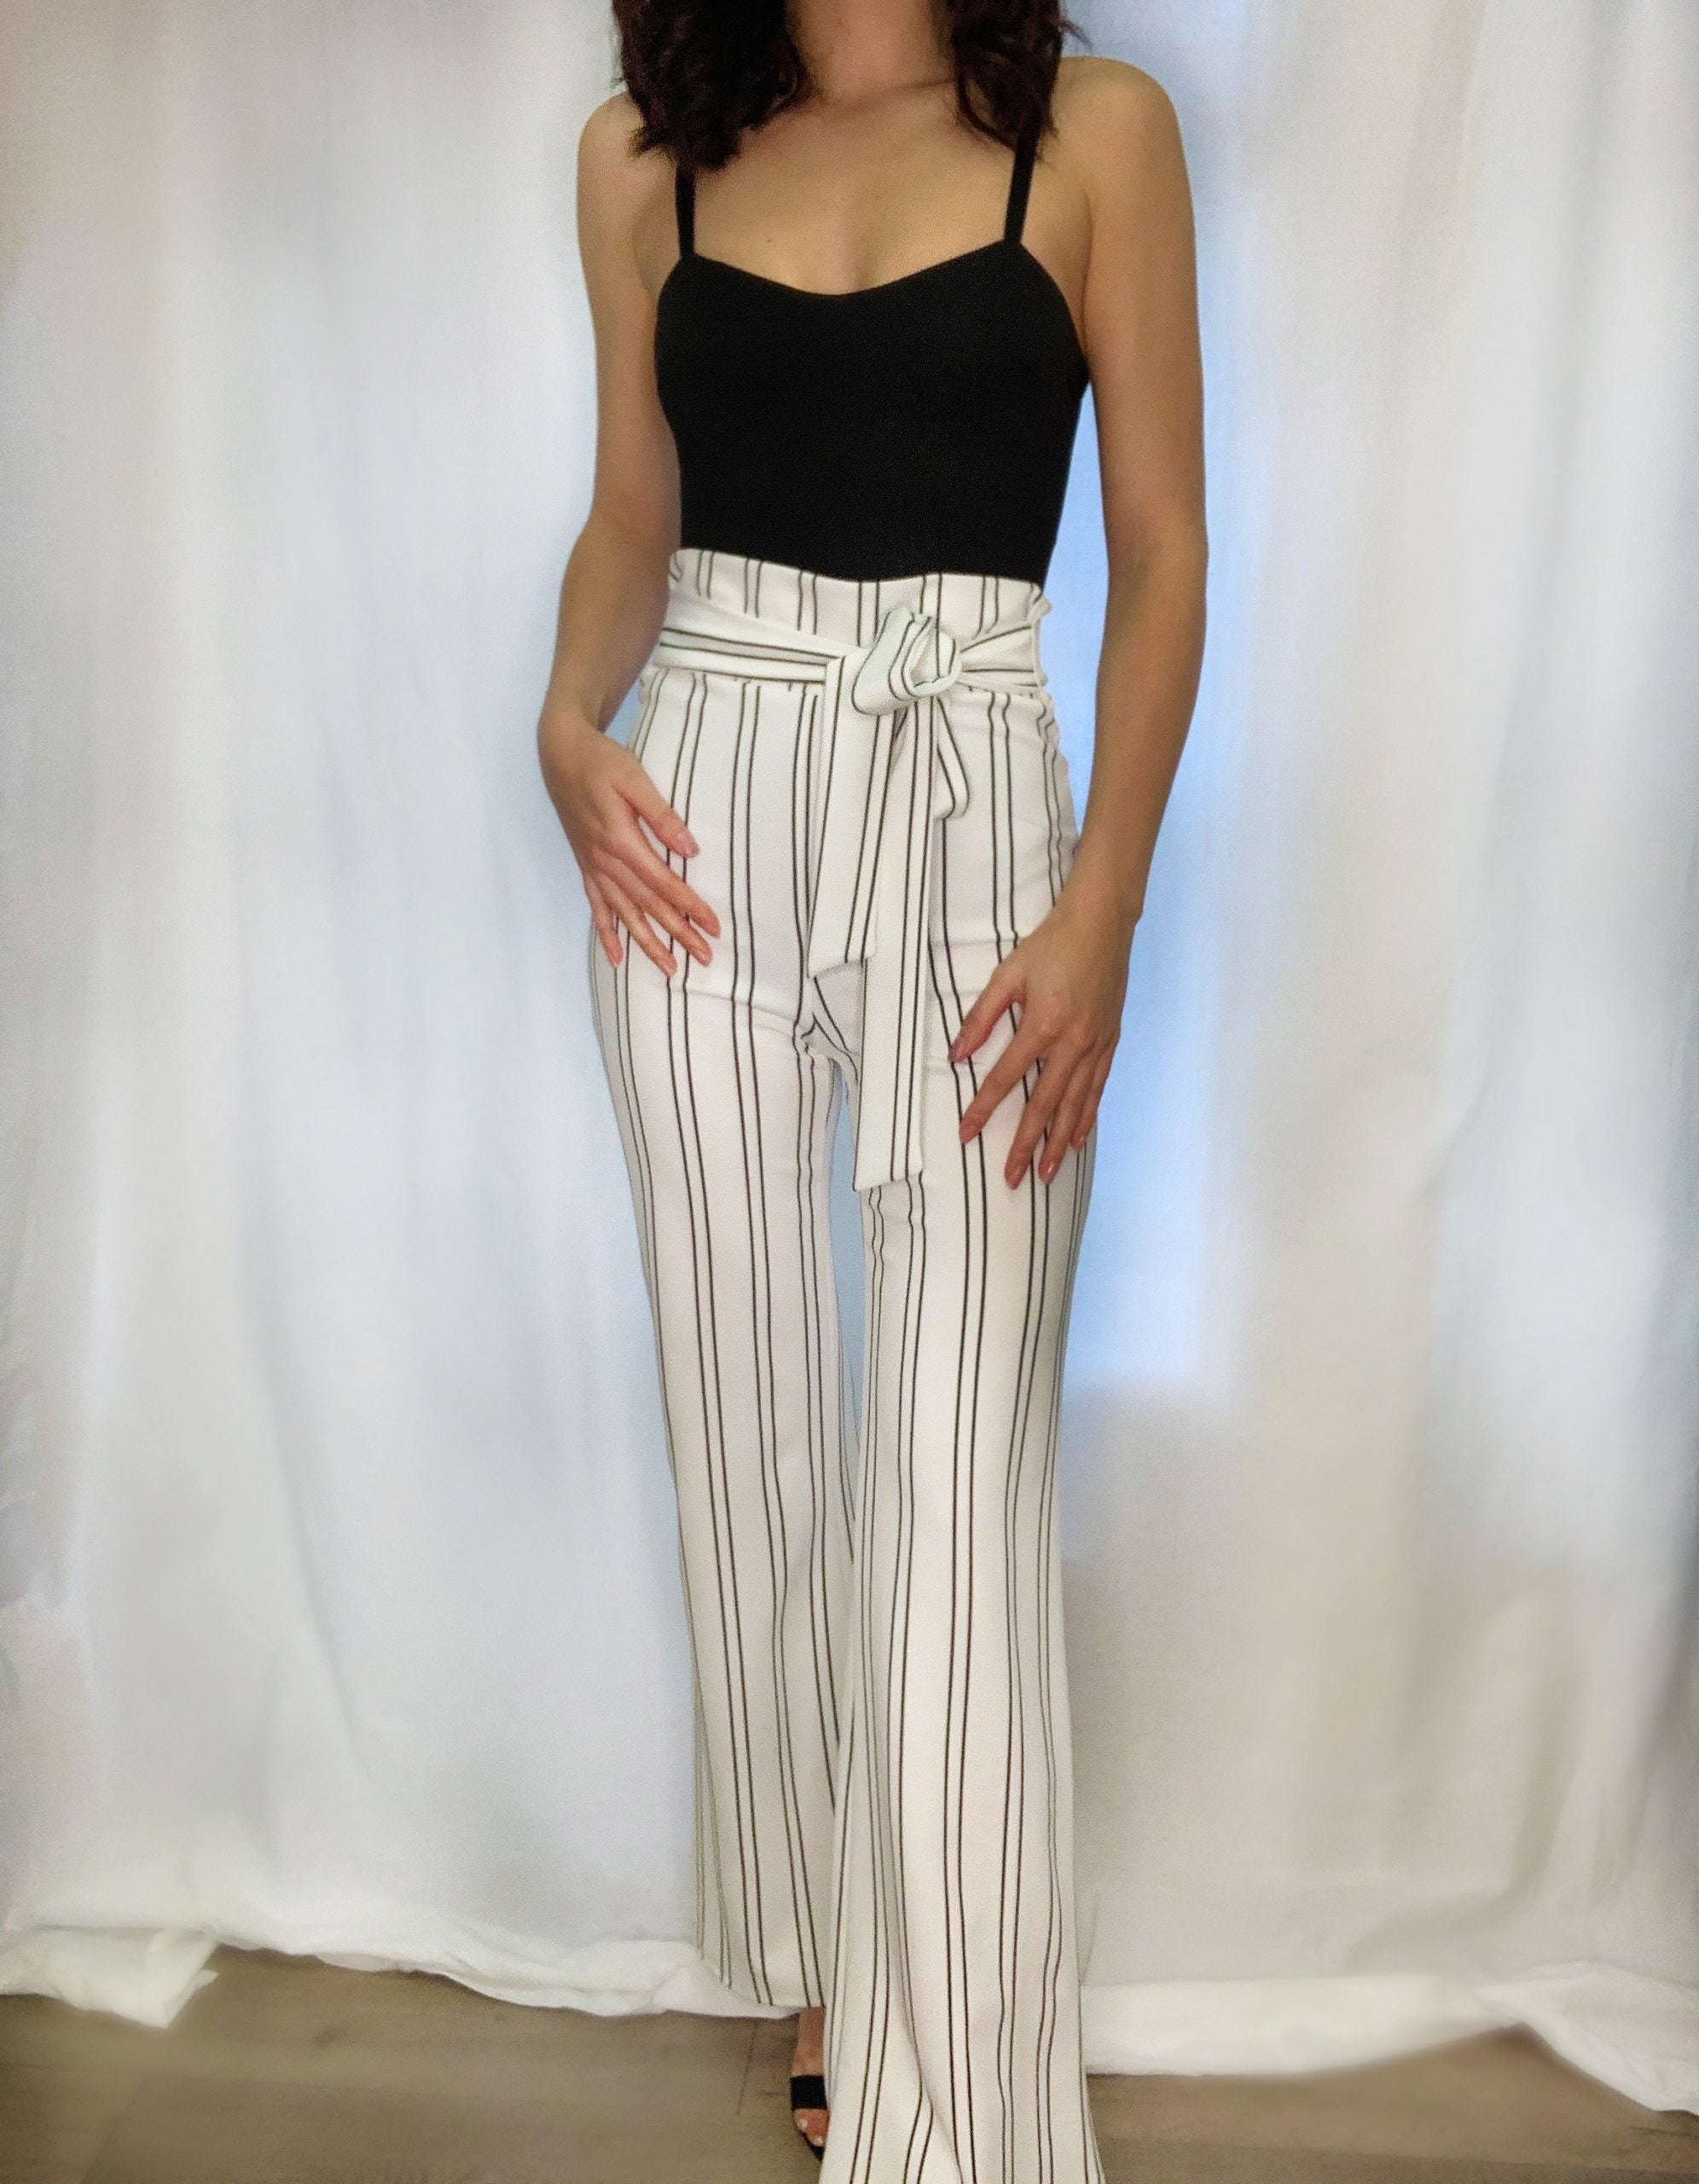 Stripe Dressy High Waist Pants $16/each